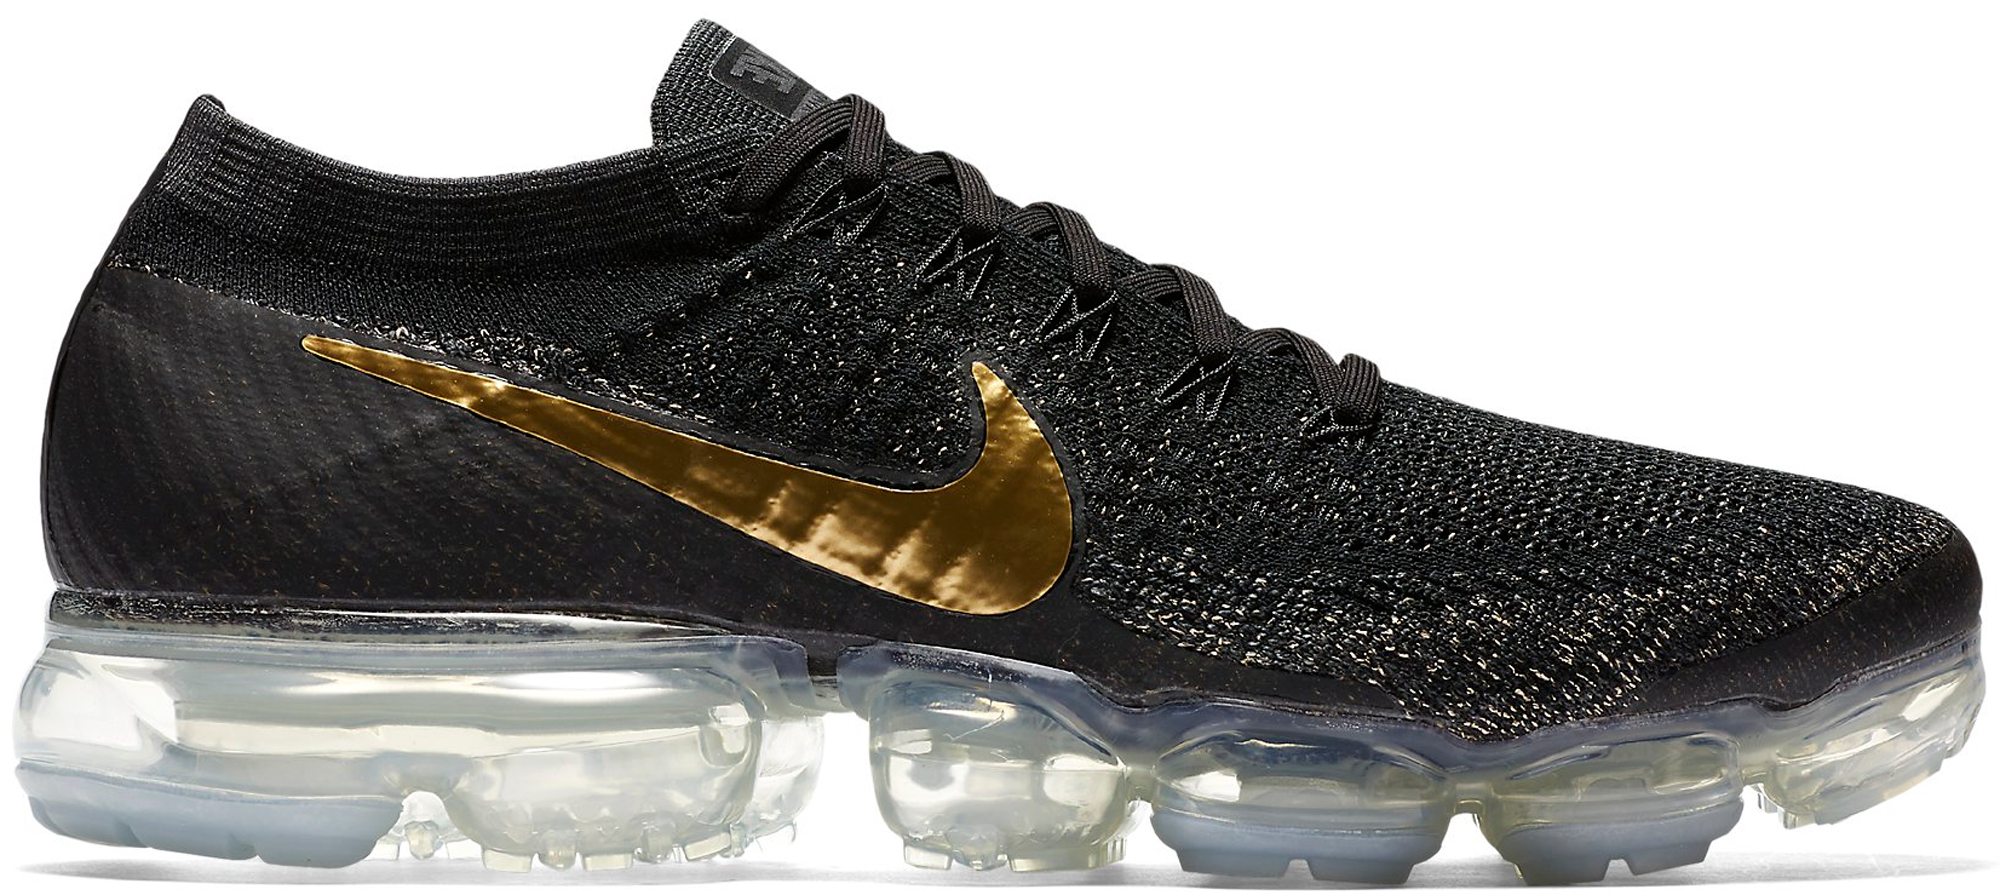 Nike Vapormax Gold And Black